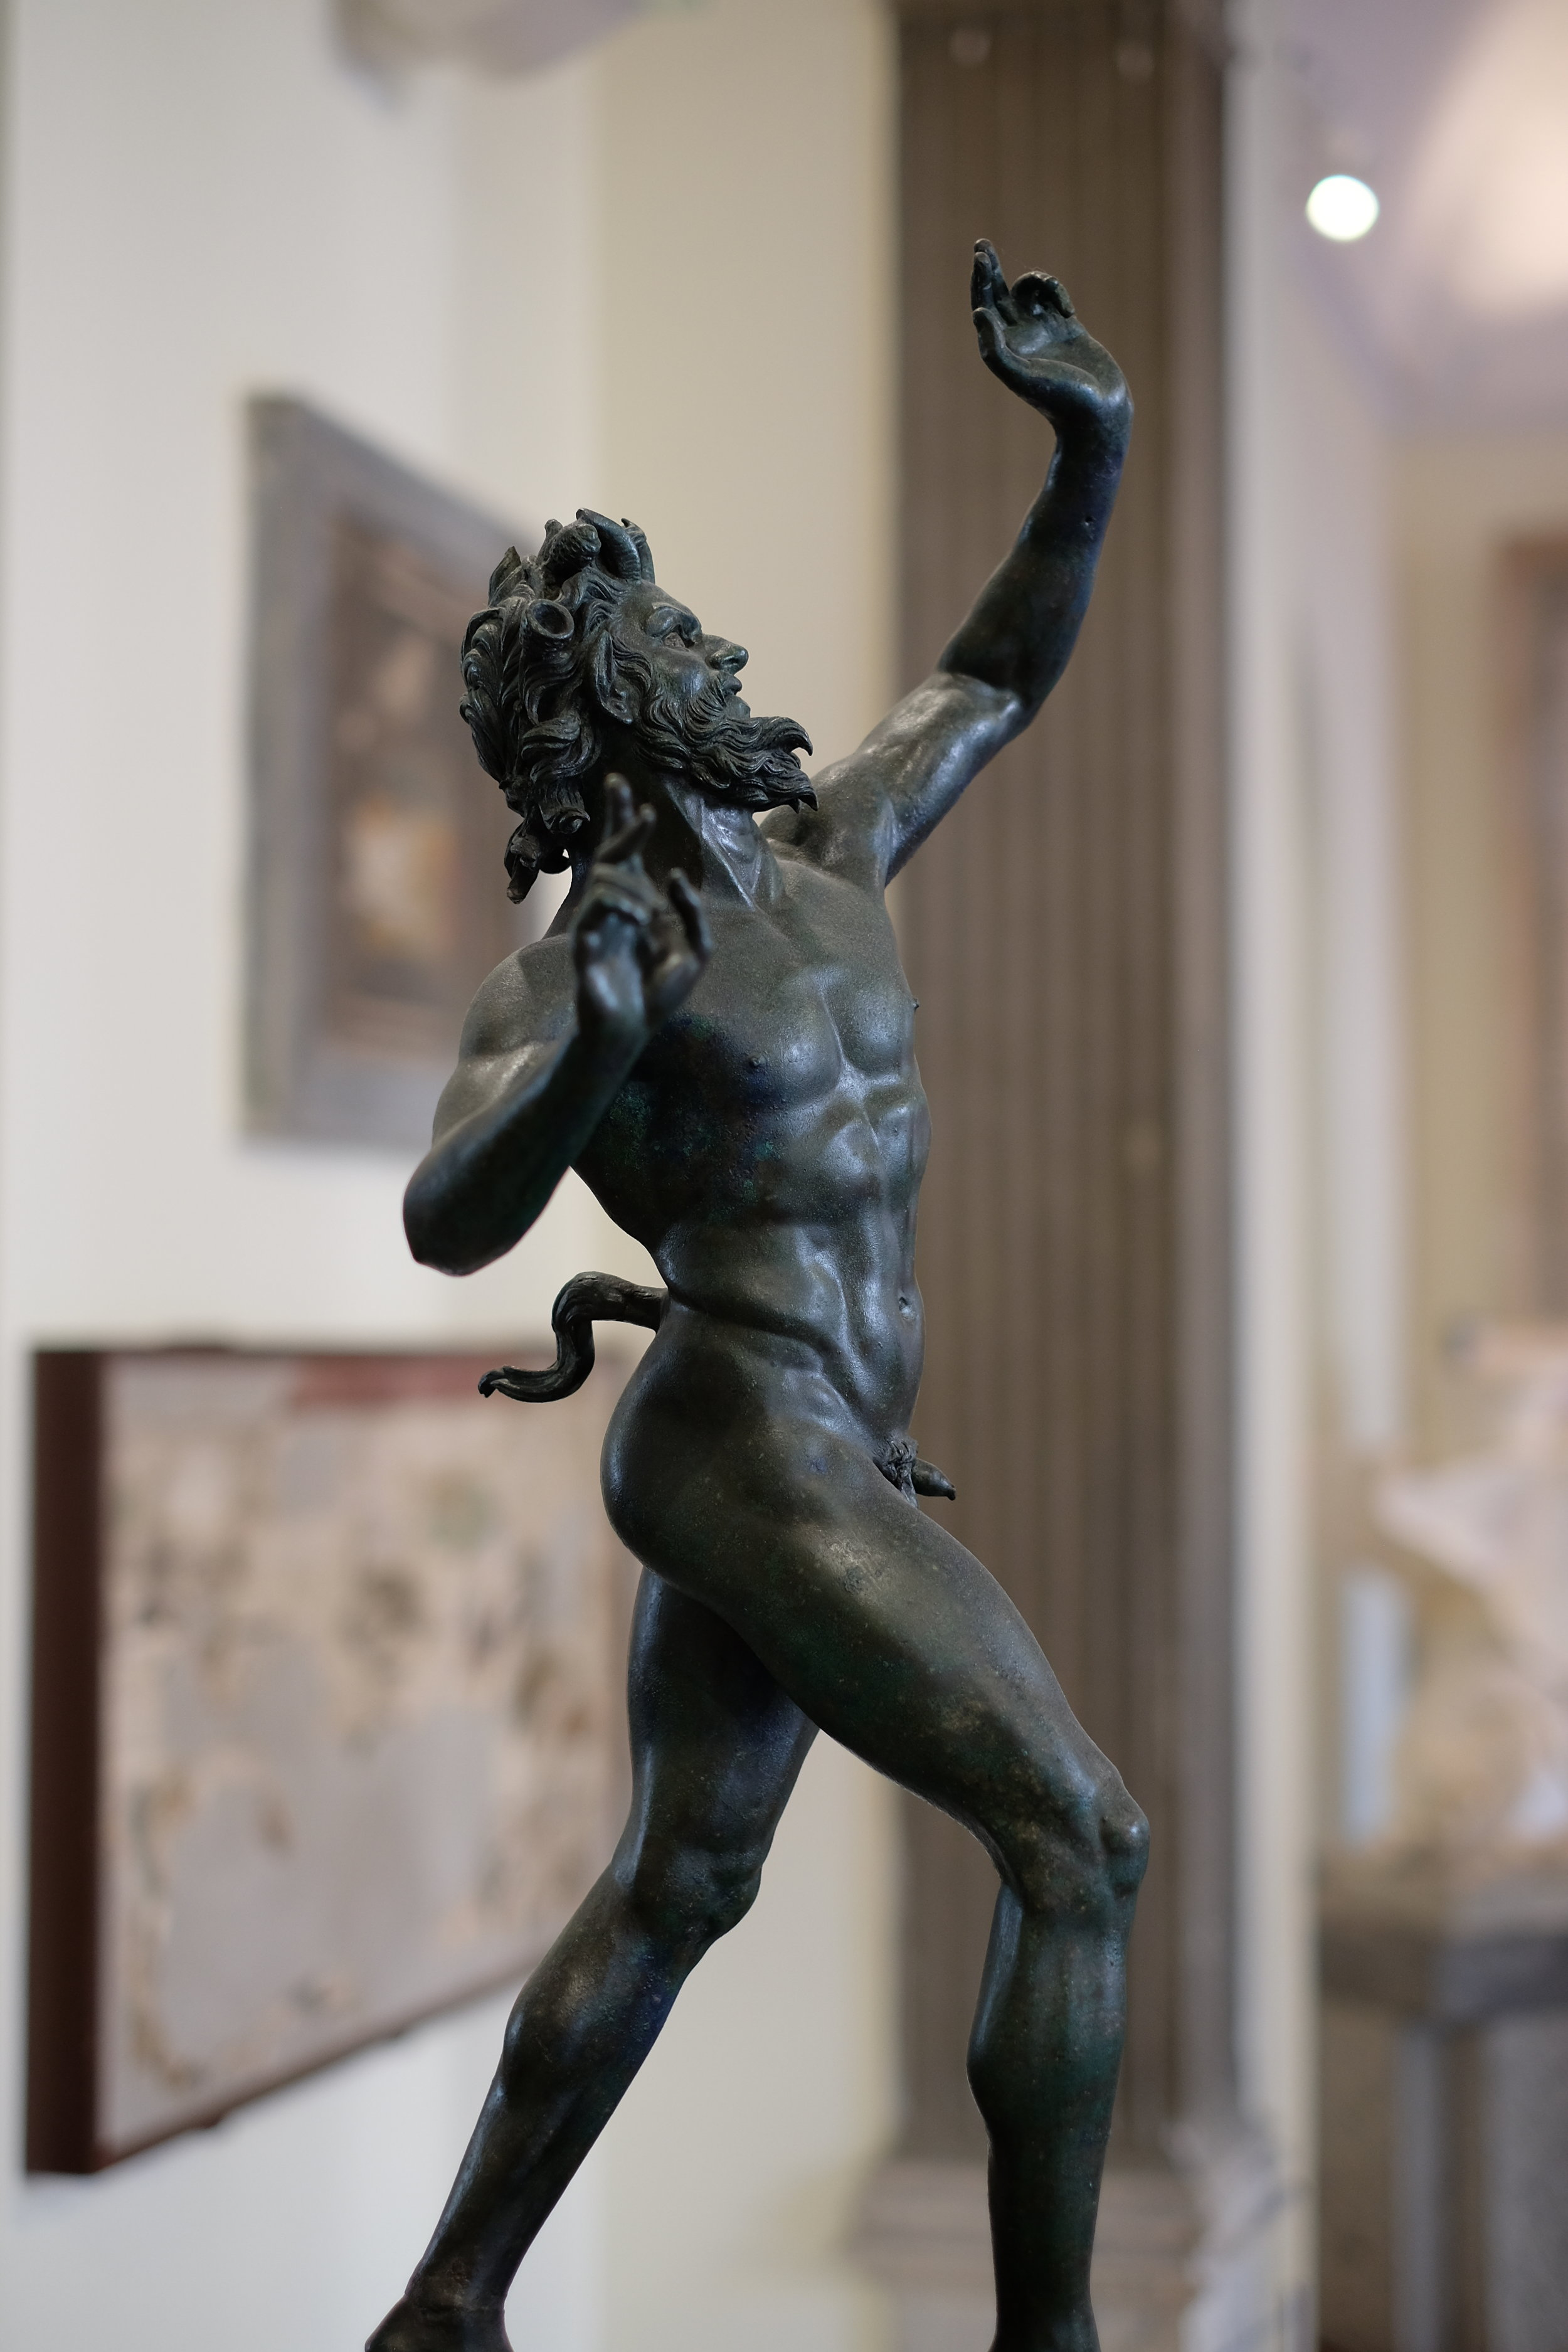 The original statue of the Faun from Pompeii, on the first floor.